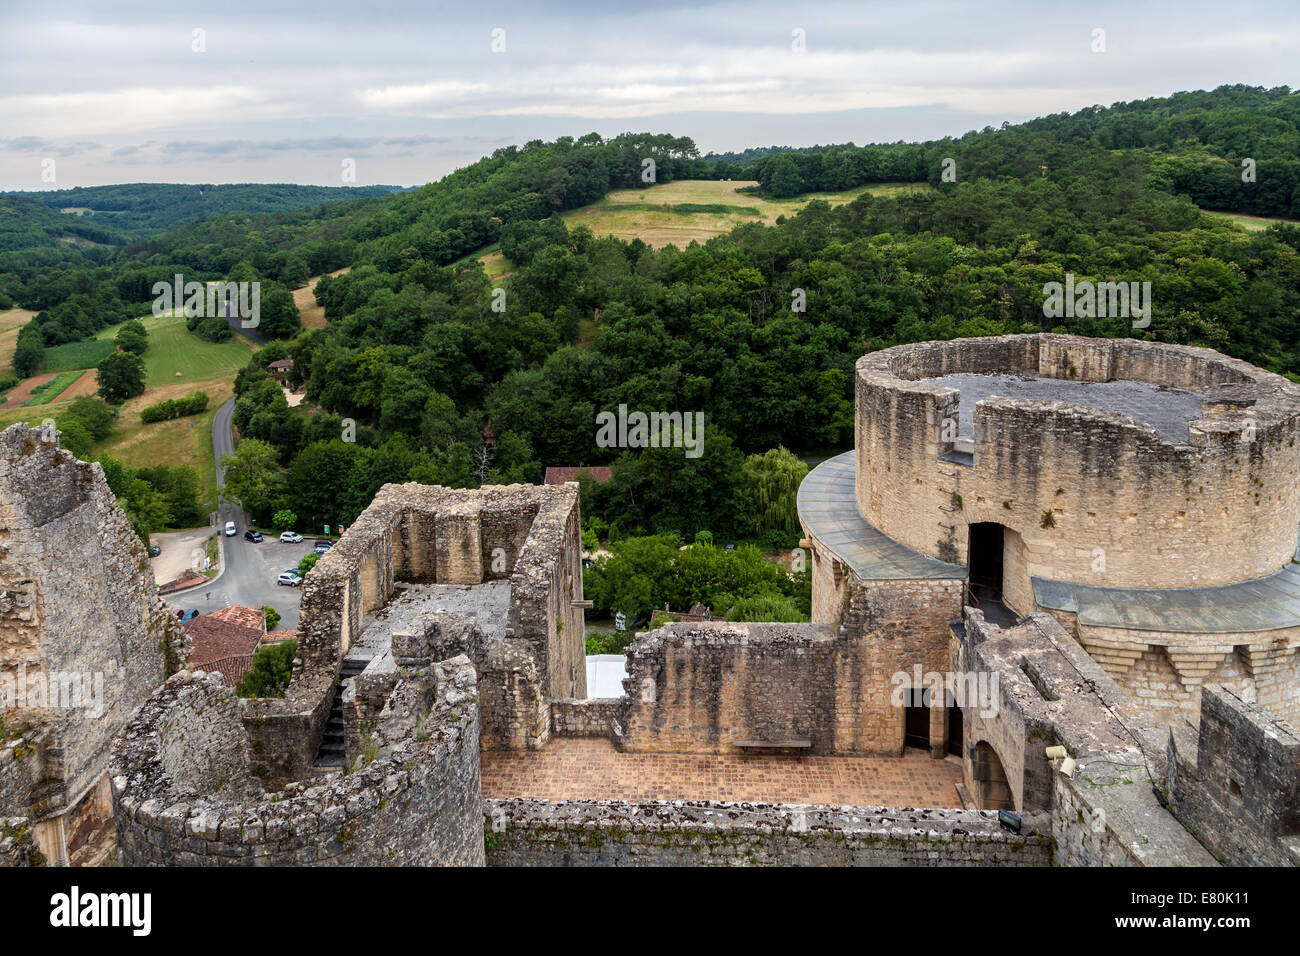 a view of the French countryside from the Bonaguil Castle near Fumel France, a historic building and military architecture - Stock Image